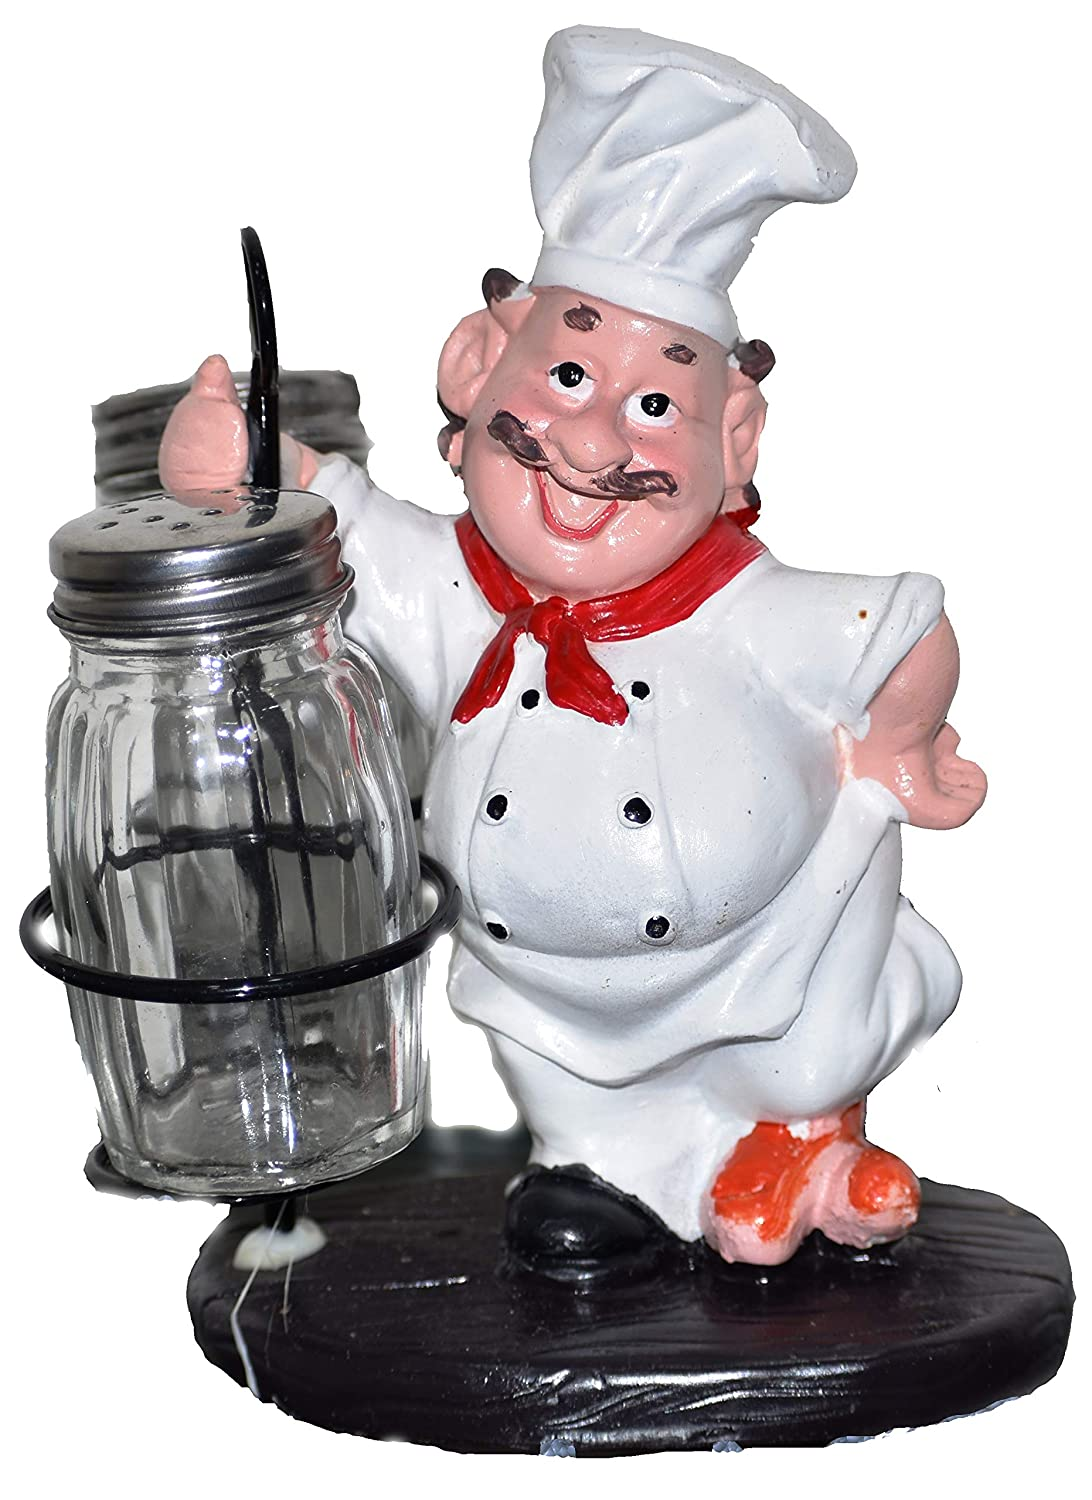 Buy Tailos Fat Italian Chef Figurines Resin Kitchen Decor Cook Statue With Seasoning Bottle 6x4 5 Inch Online At Low Prices In India Amazon